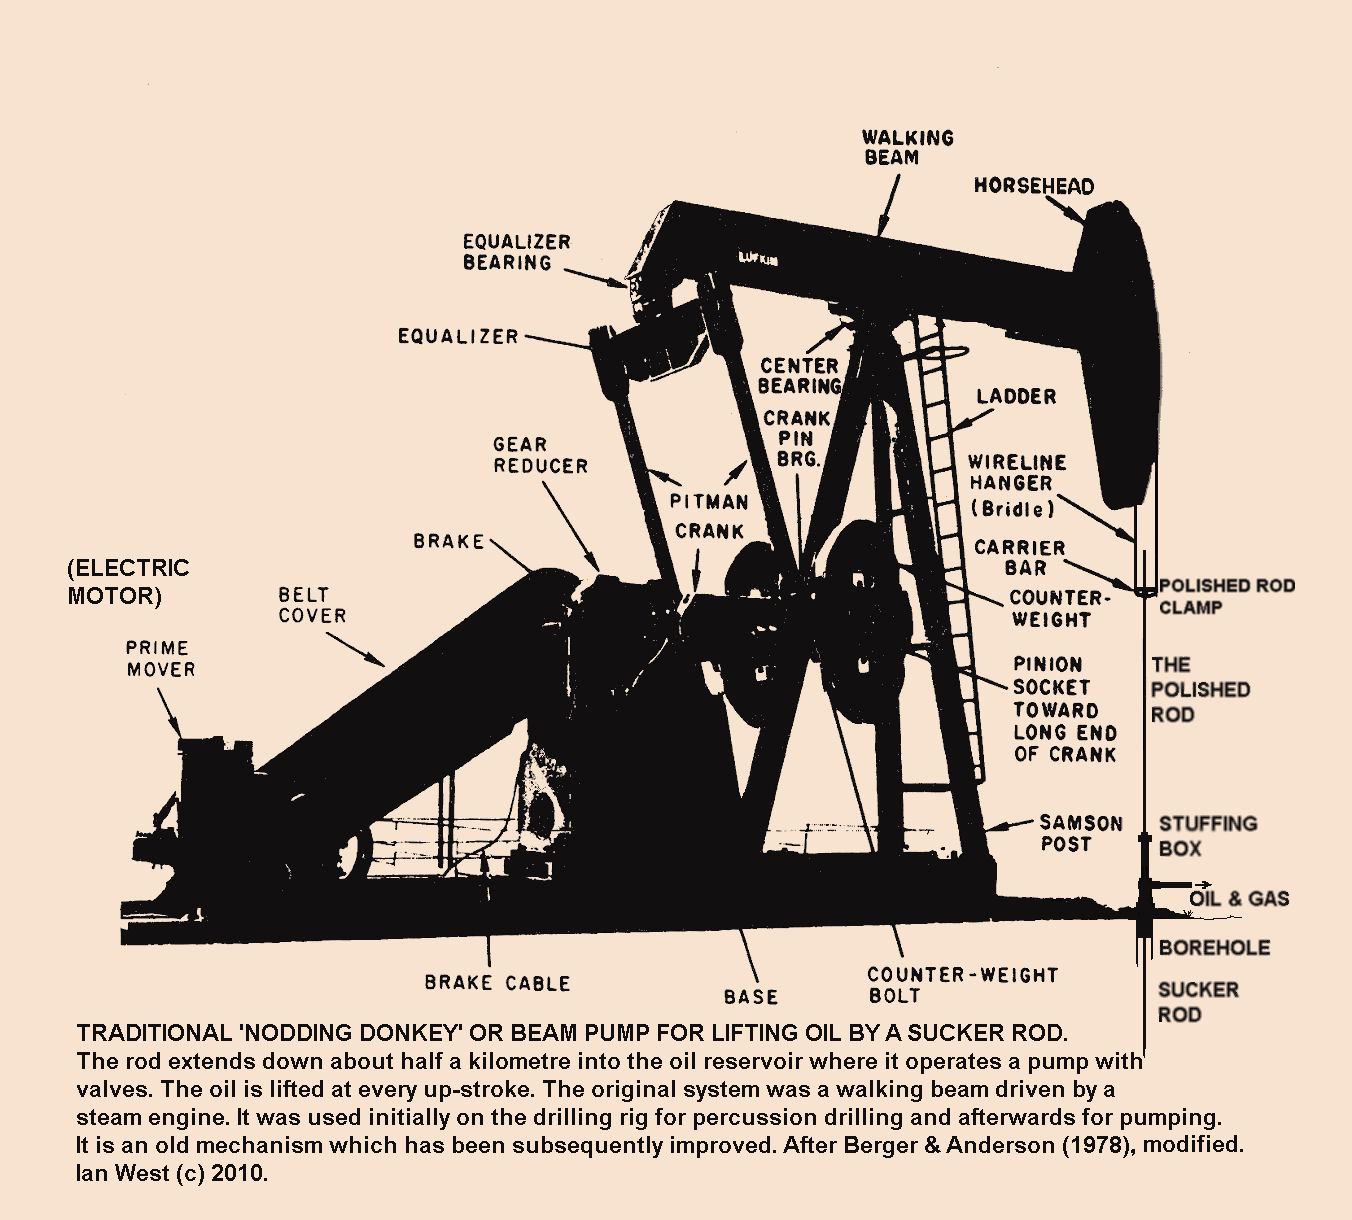 Oil South England - Introduction